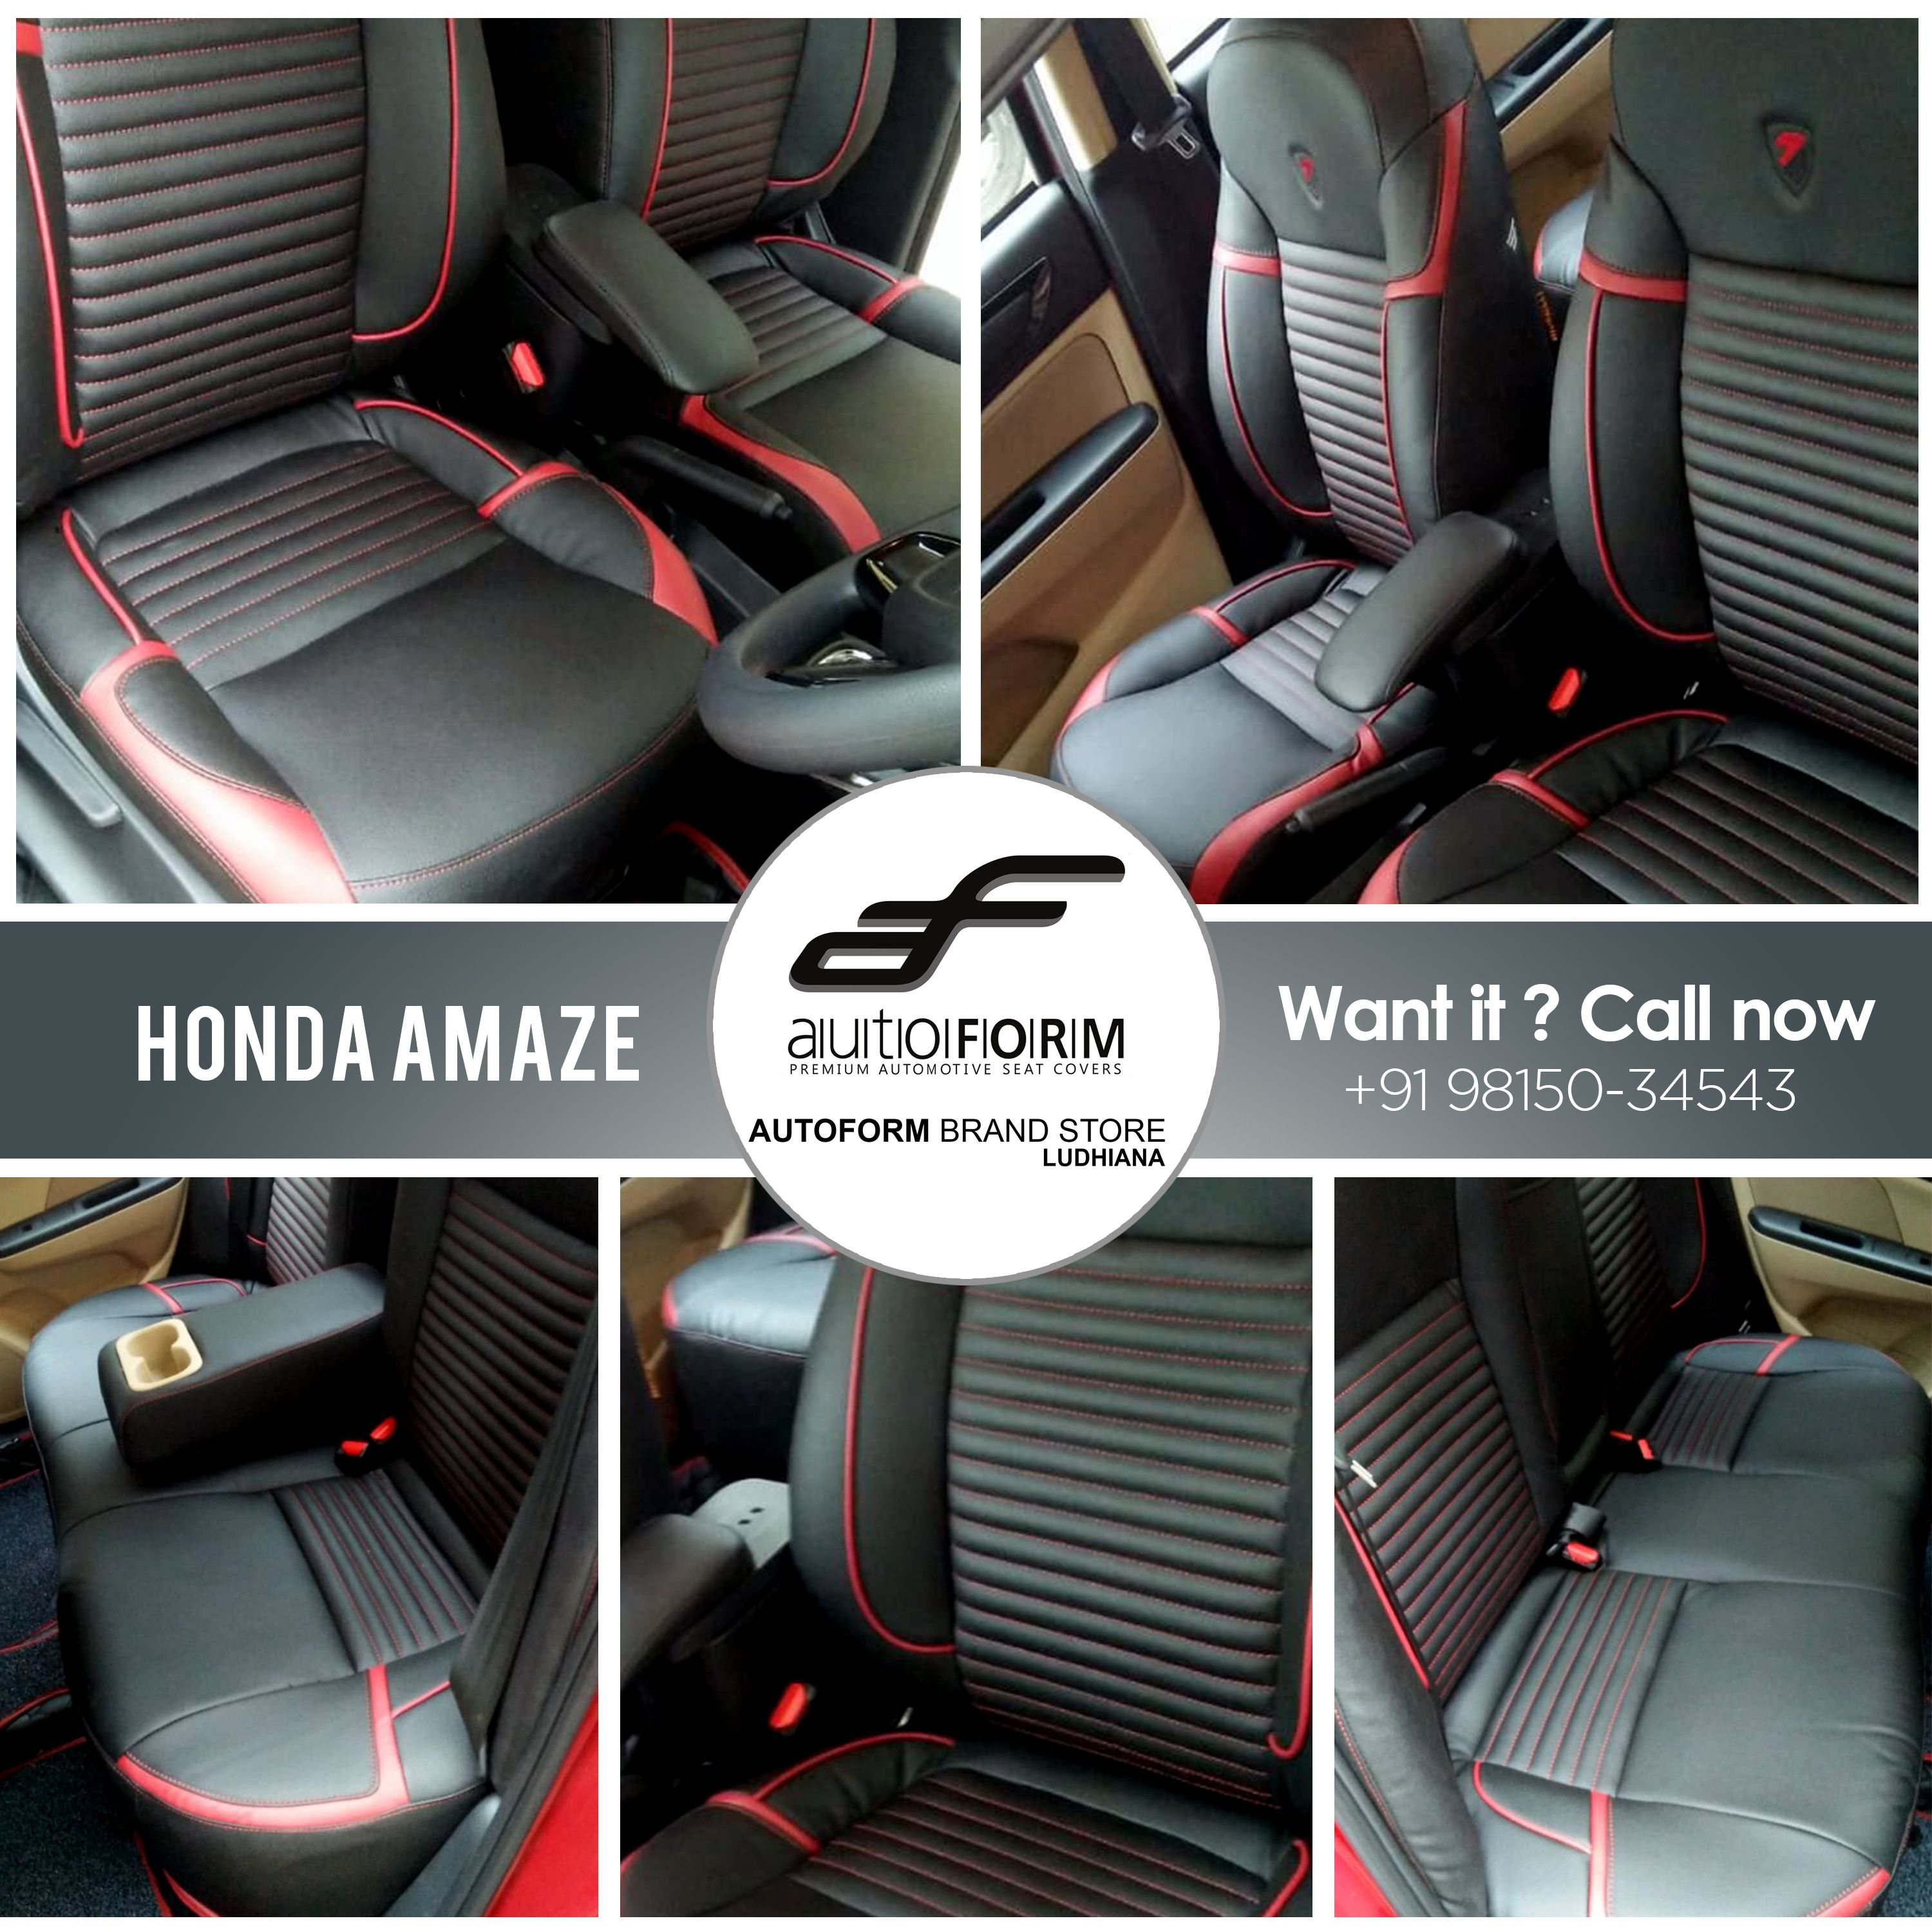 New Honda Amaze In Our Studio Last Day To Uncover The Luxurious